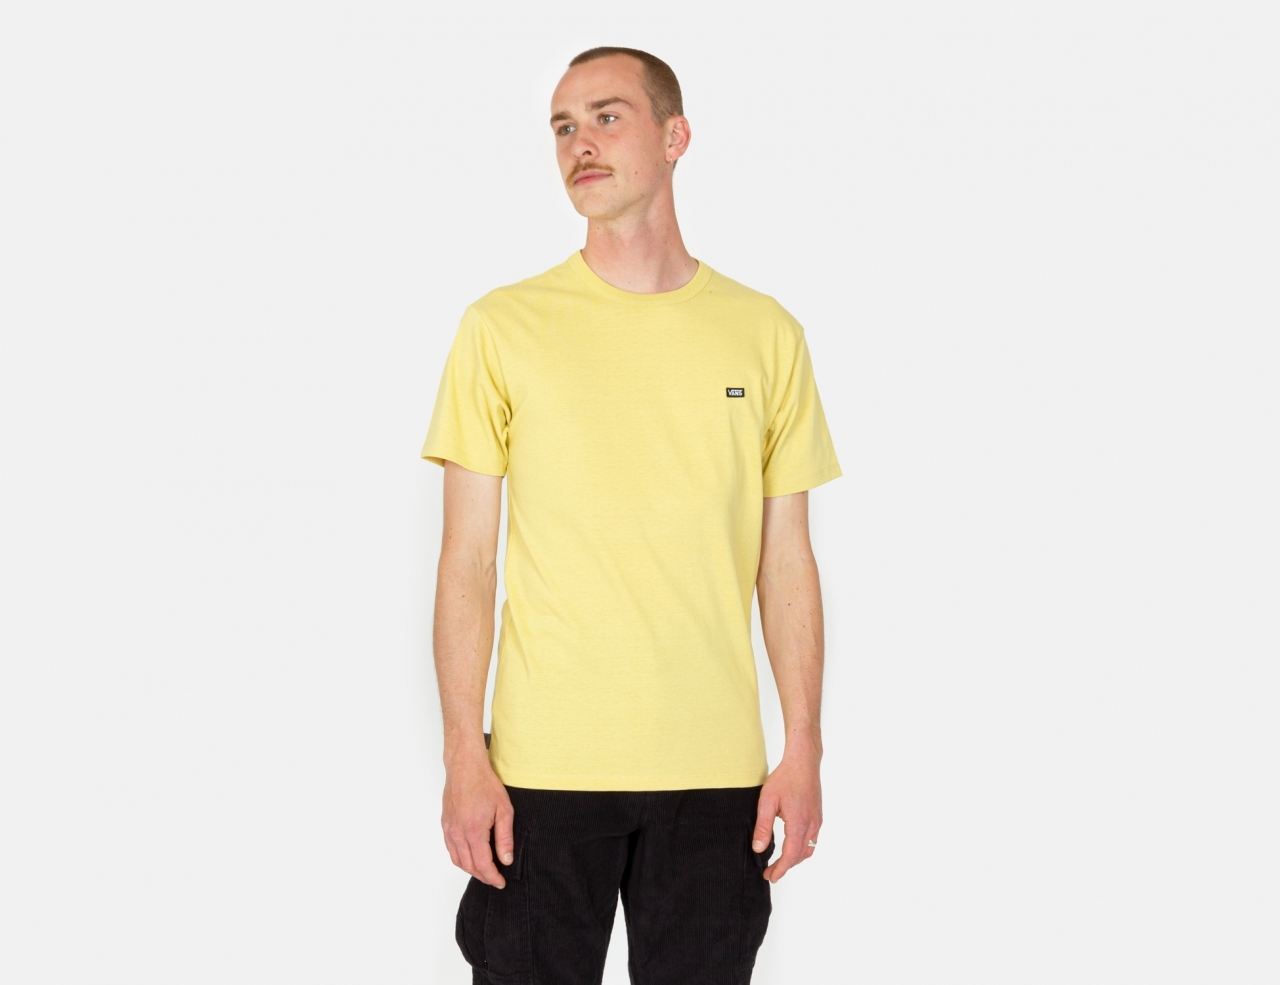 VANS Off The Wall Classic T-Shirt - Dried Moss